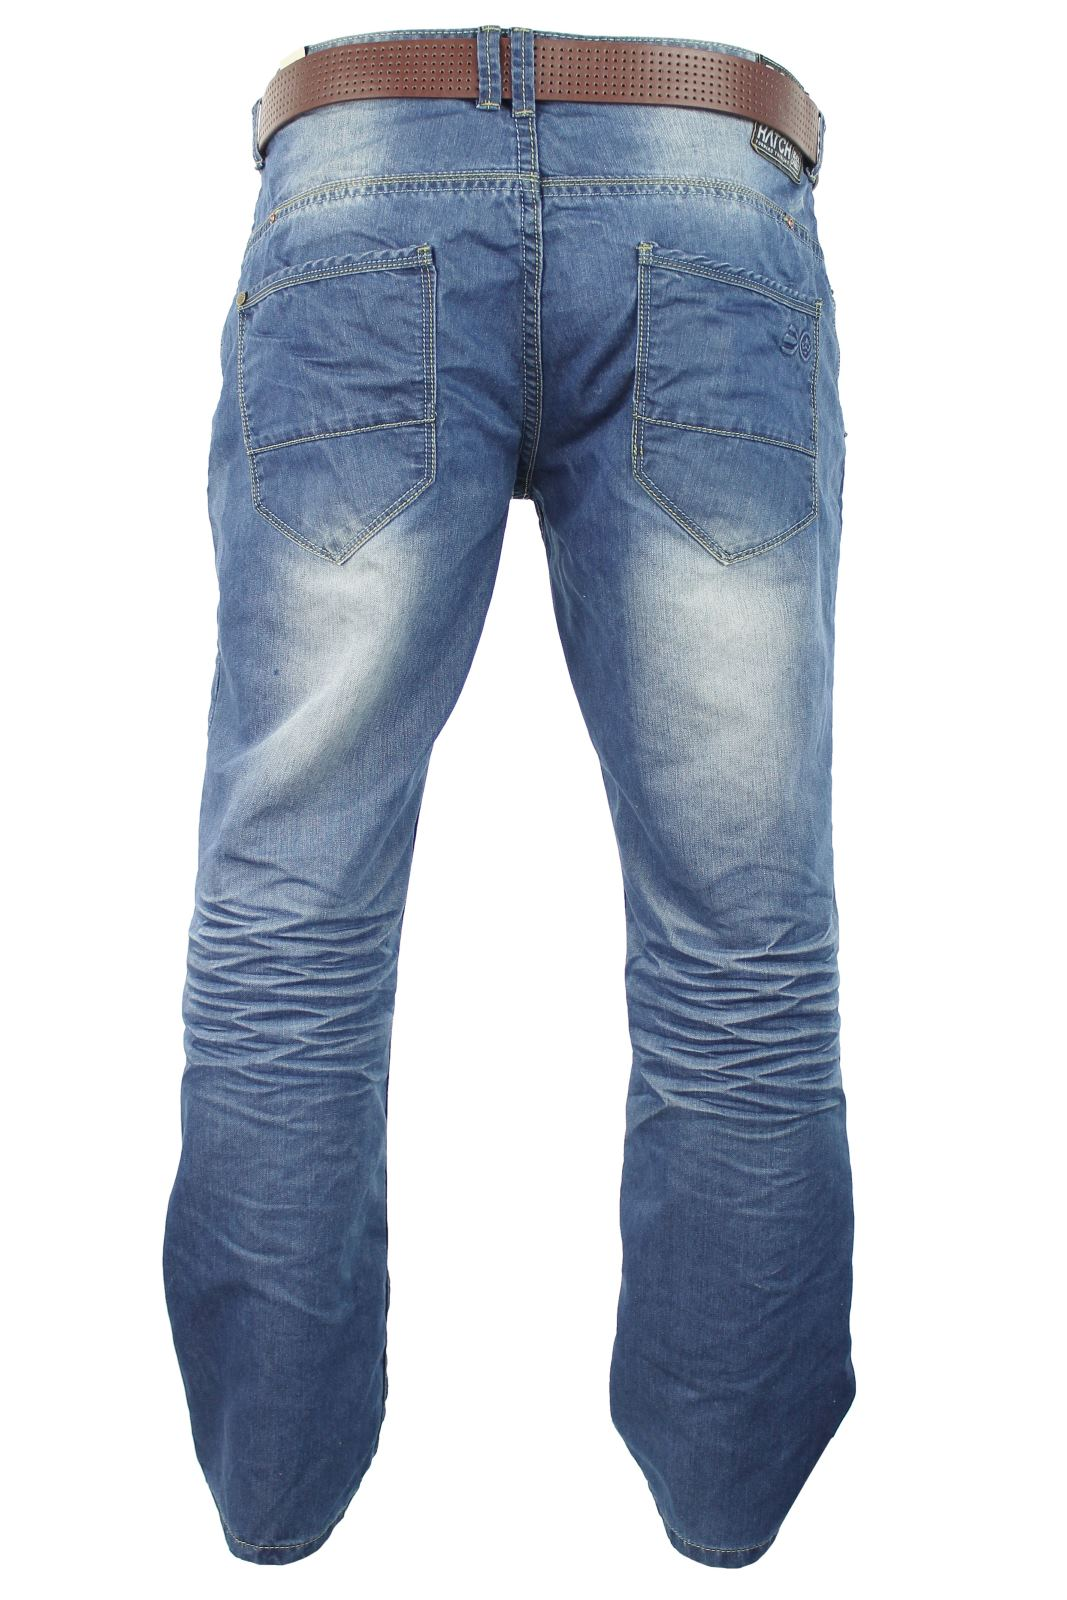 Mens Crosshatch Jeans Raw Stone Washed Denim Button Fly-3